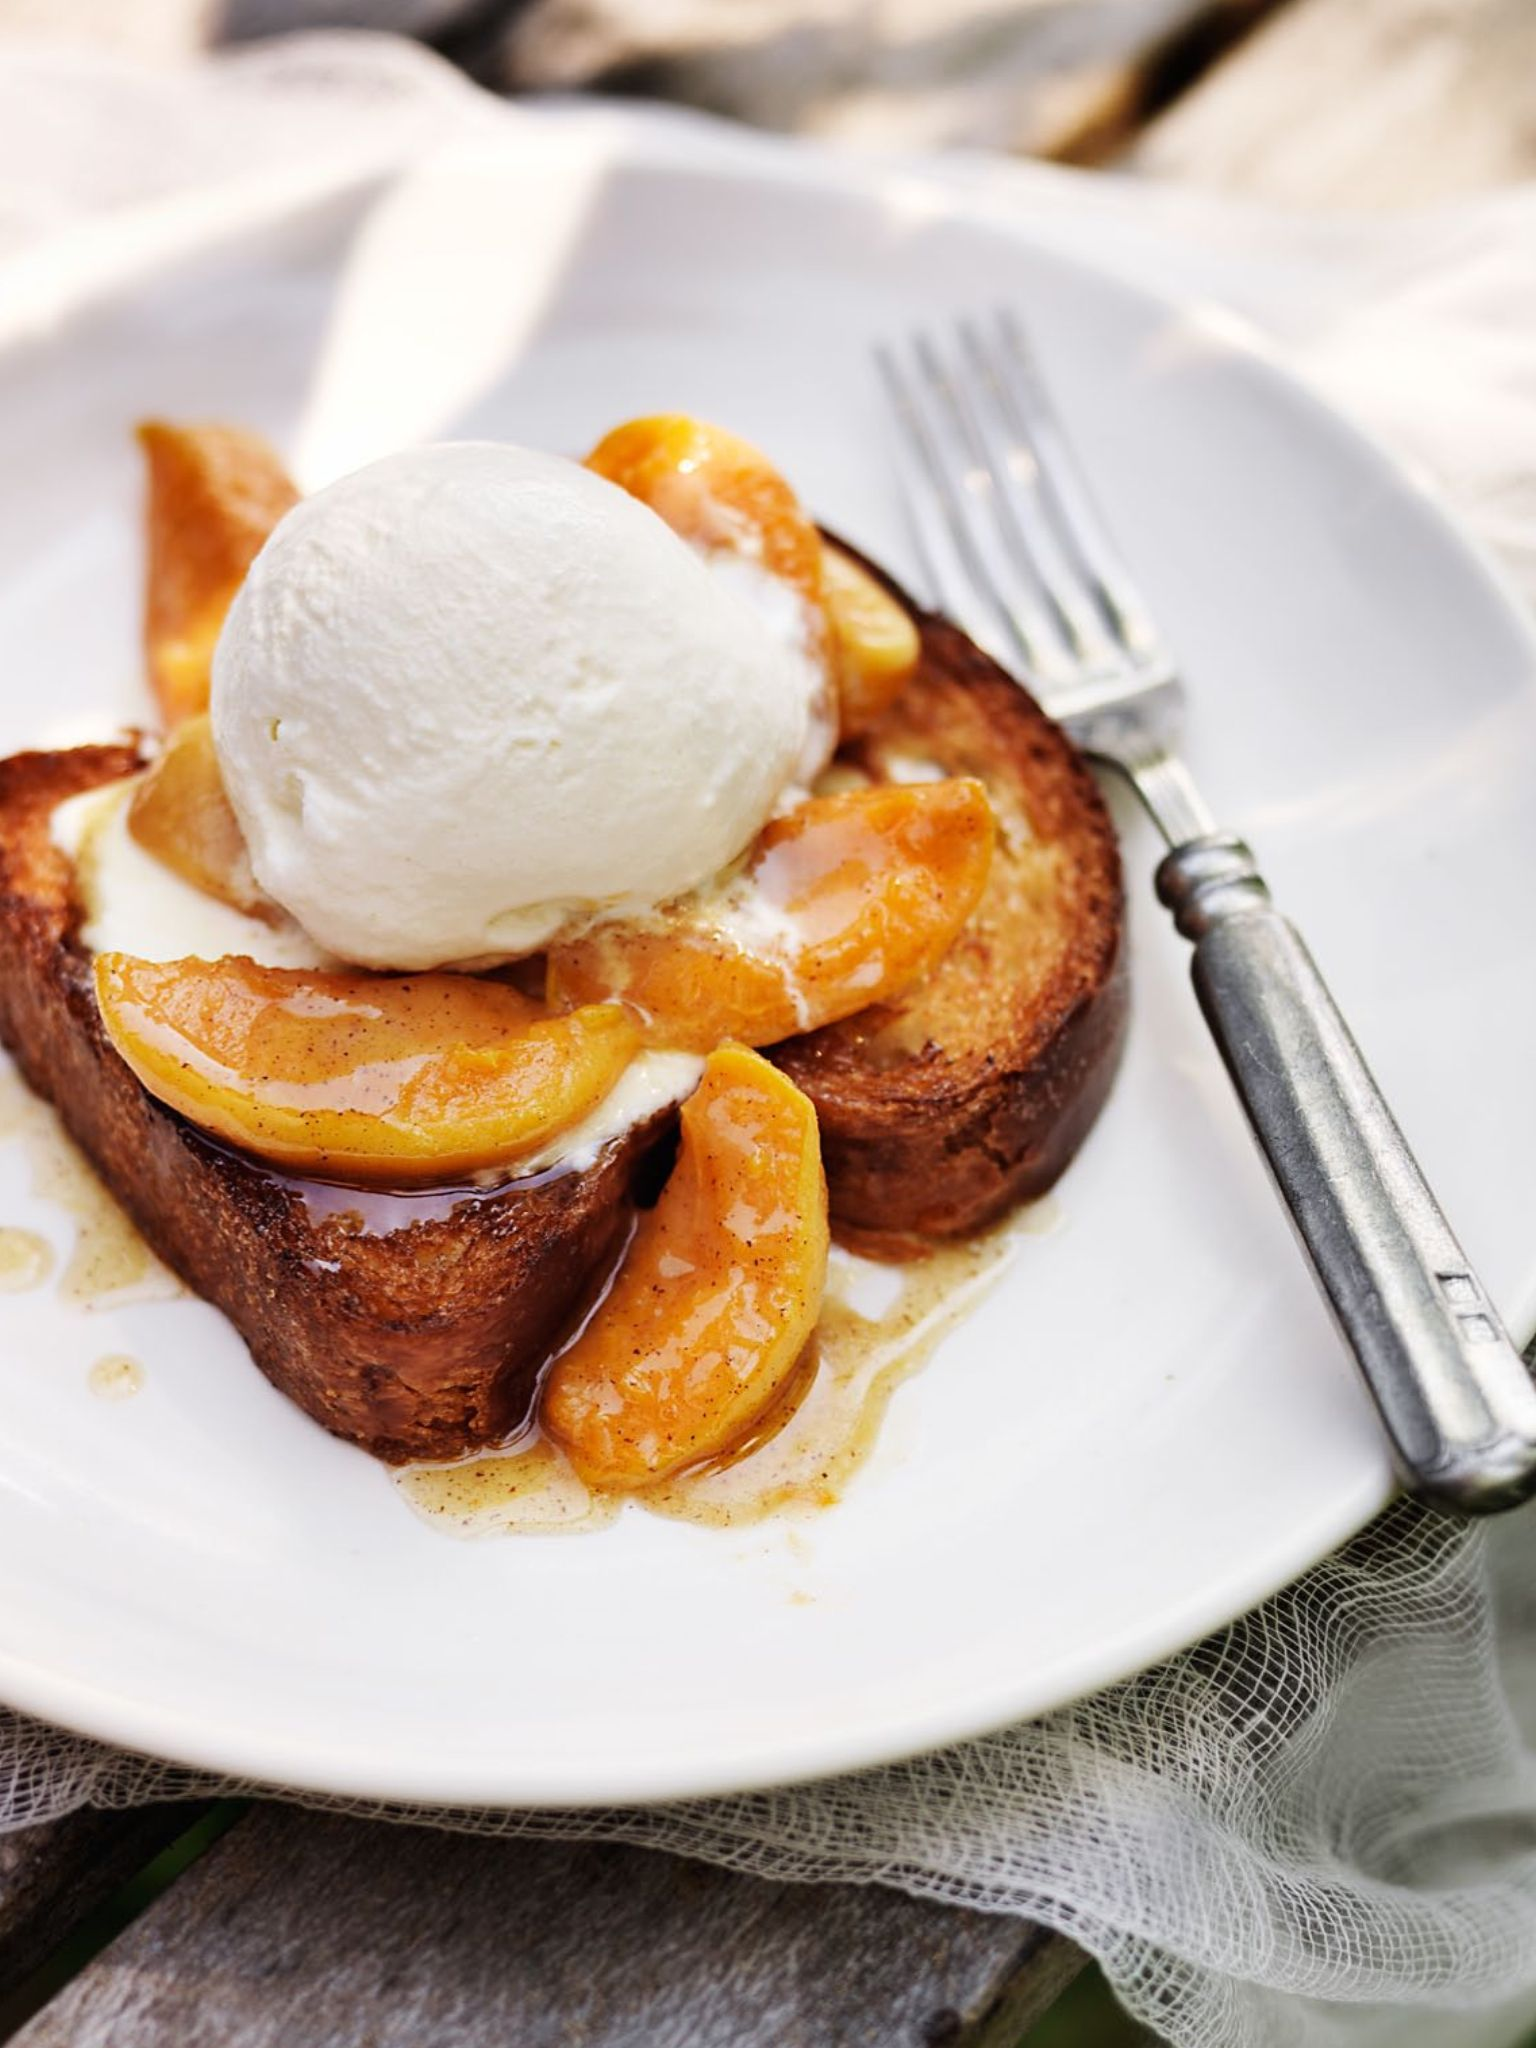 31 Life-Changing Ways To Eat French Toast DESSERT Life-Changing Ways To Eat French Toast DESSERT | French Toast with Peaches and Ice CreamDESSERT | French Toast with Peaches and Ice Cream